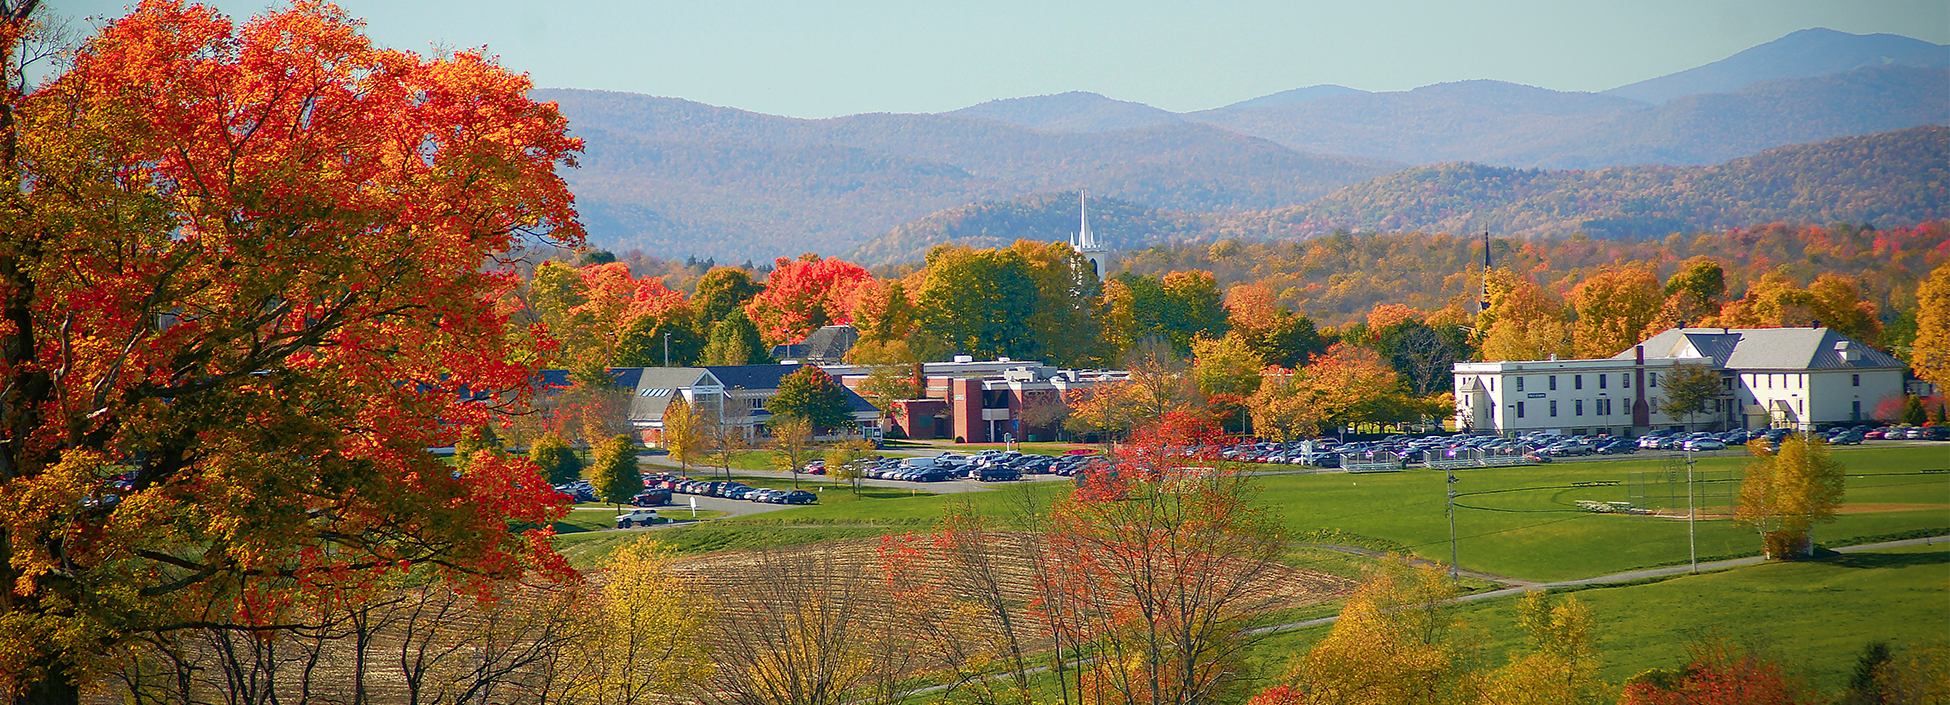 A view of the Randolph Center Campus in the fall, mountains